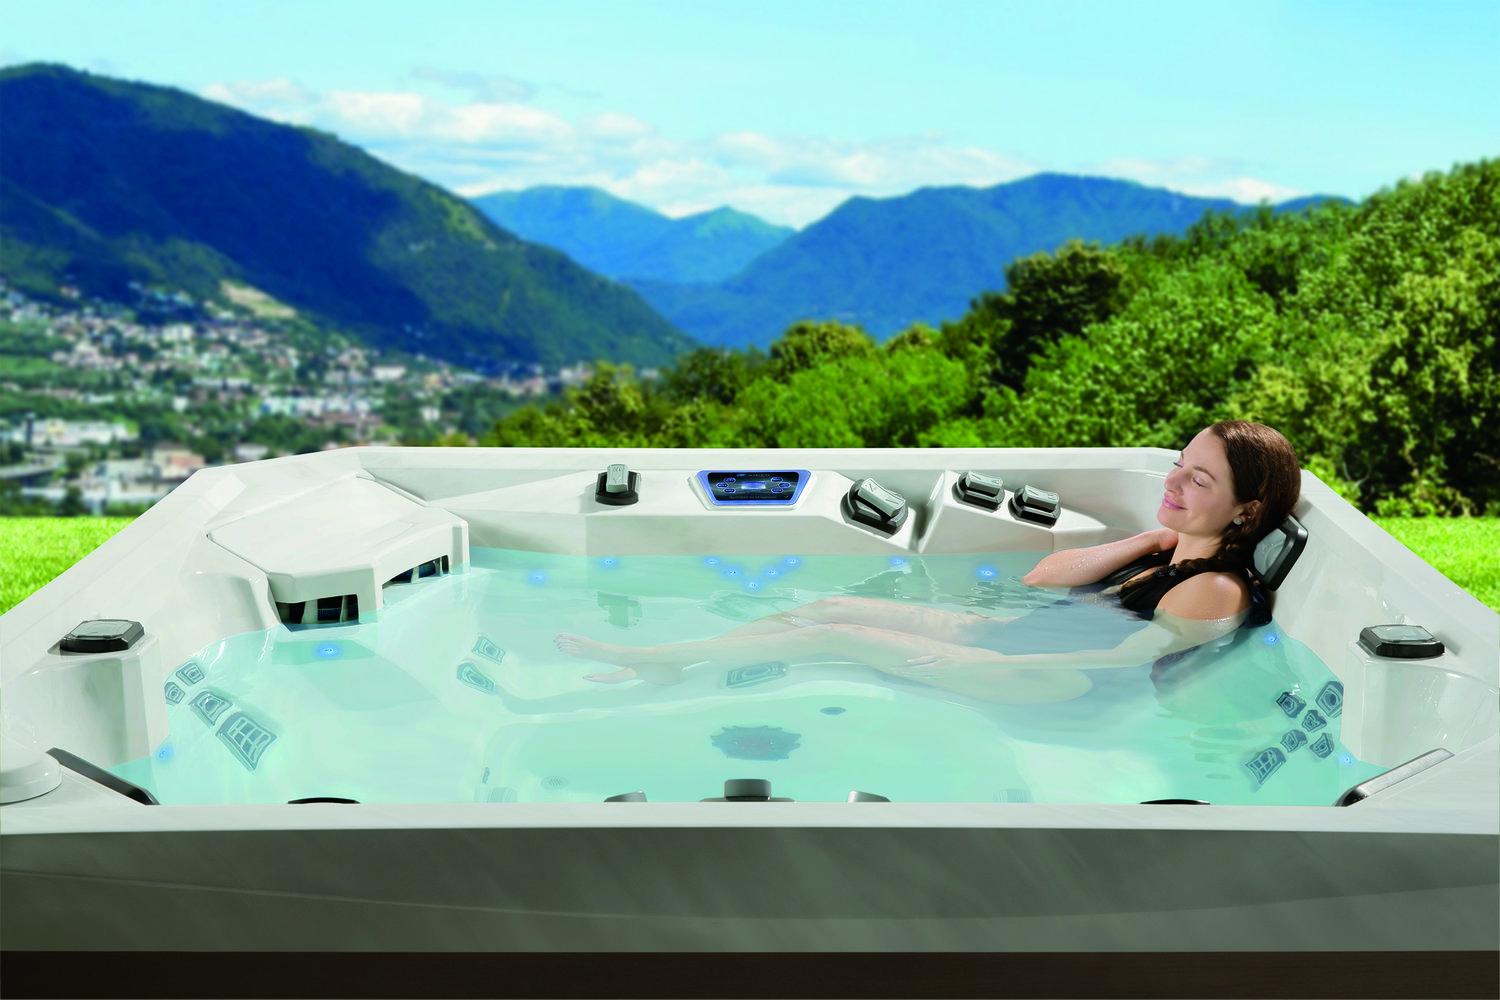 Buy Hot Tub Spas in Wenatchee - Chim Chimney Fireplace Pool & Spa ...